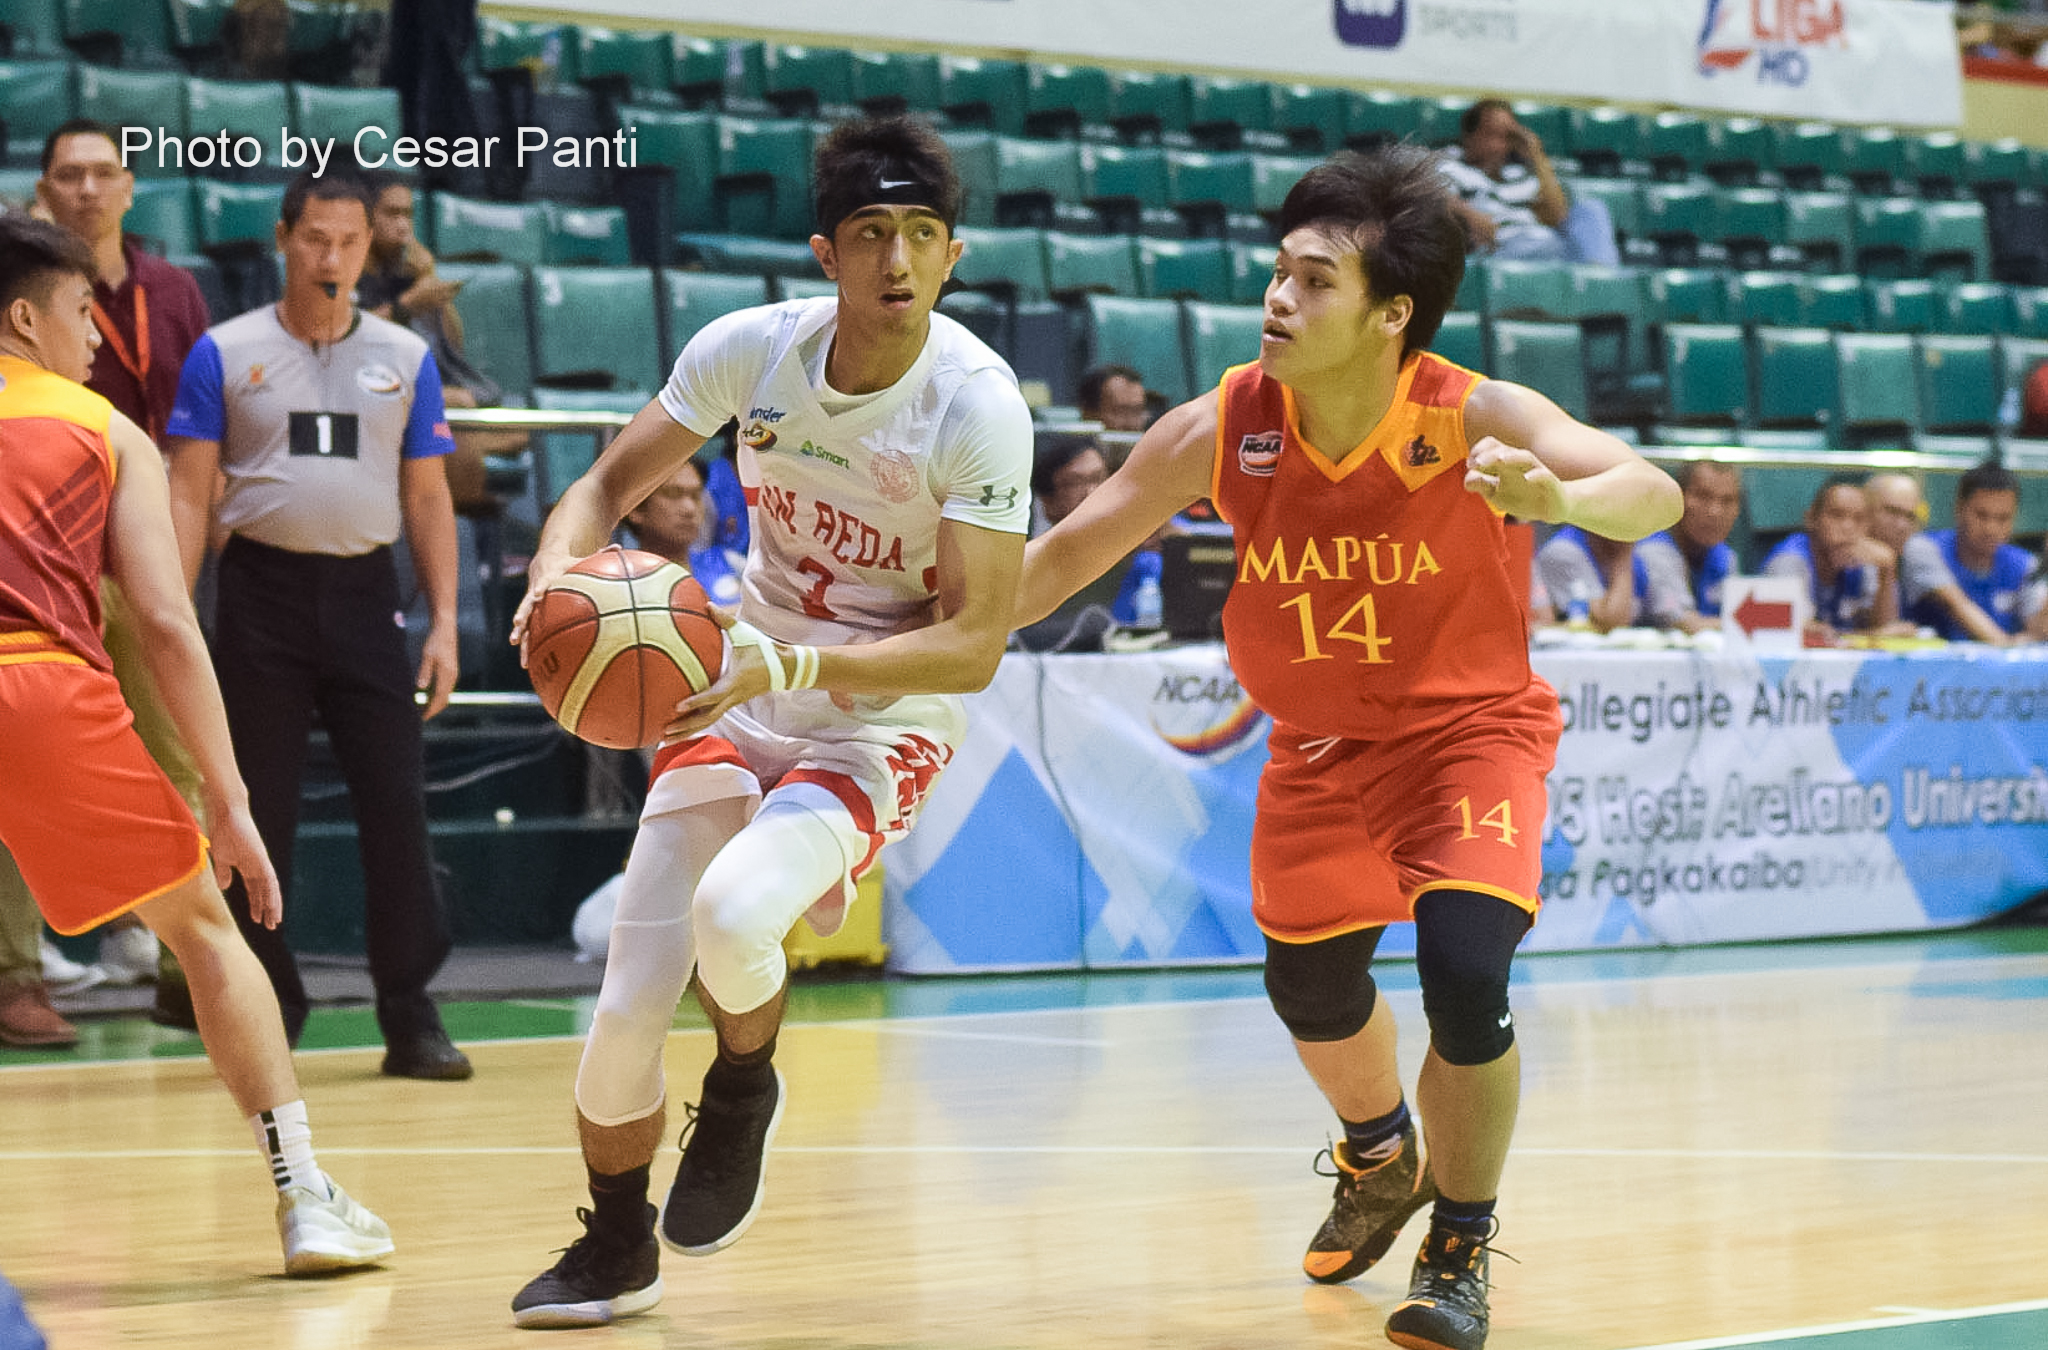 San Beda escapes Mapua to complete first round sweep